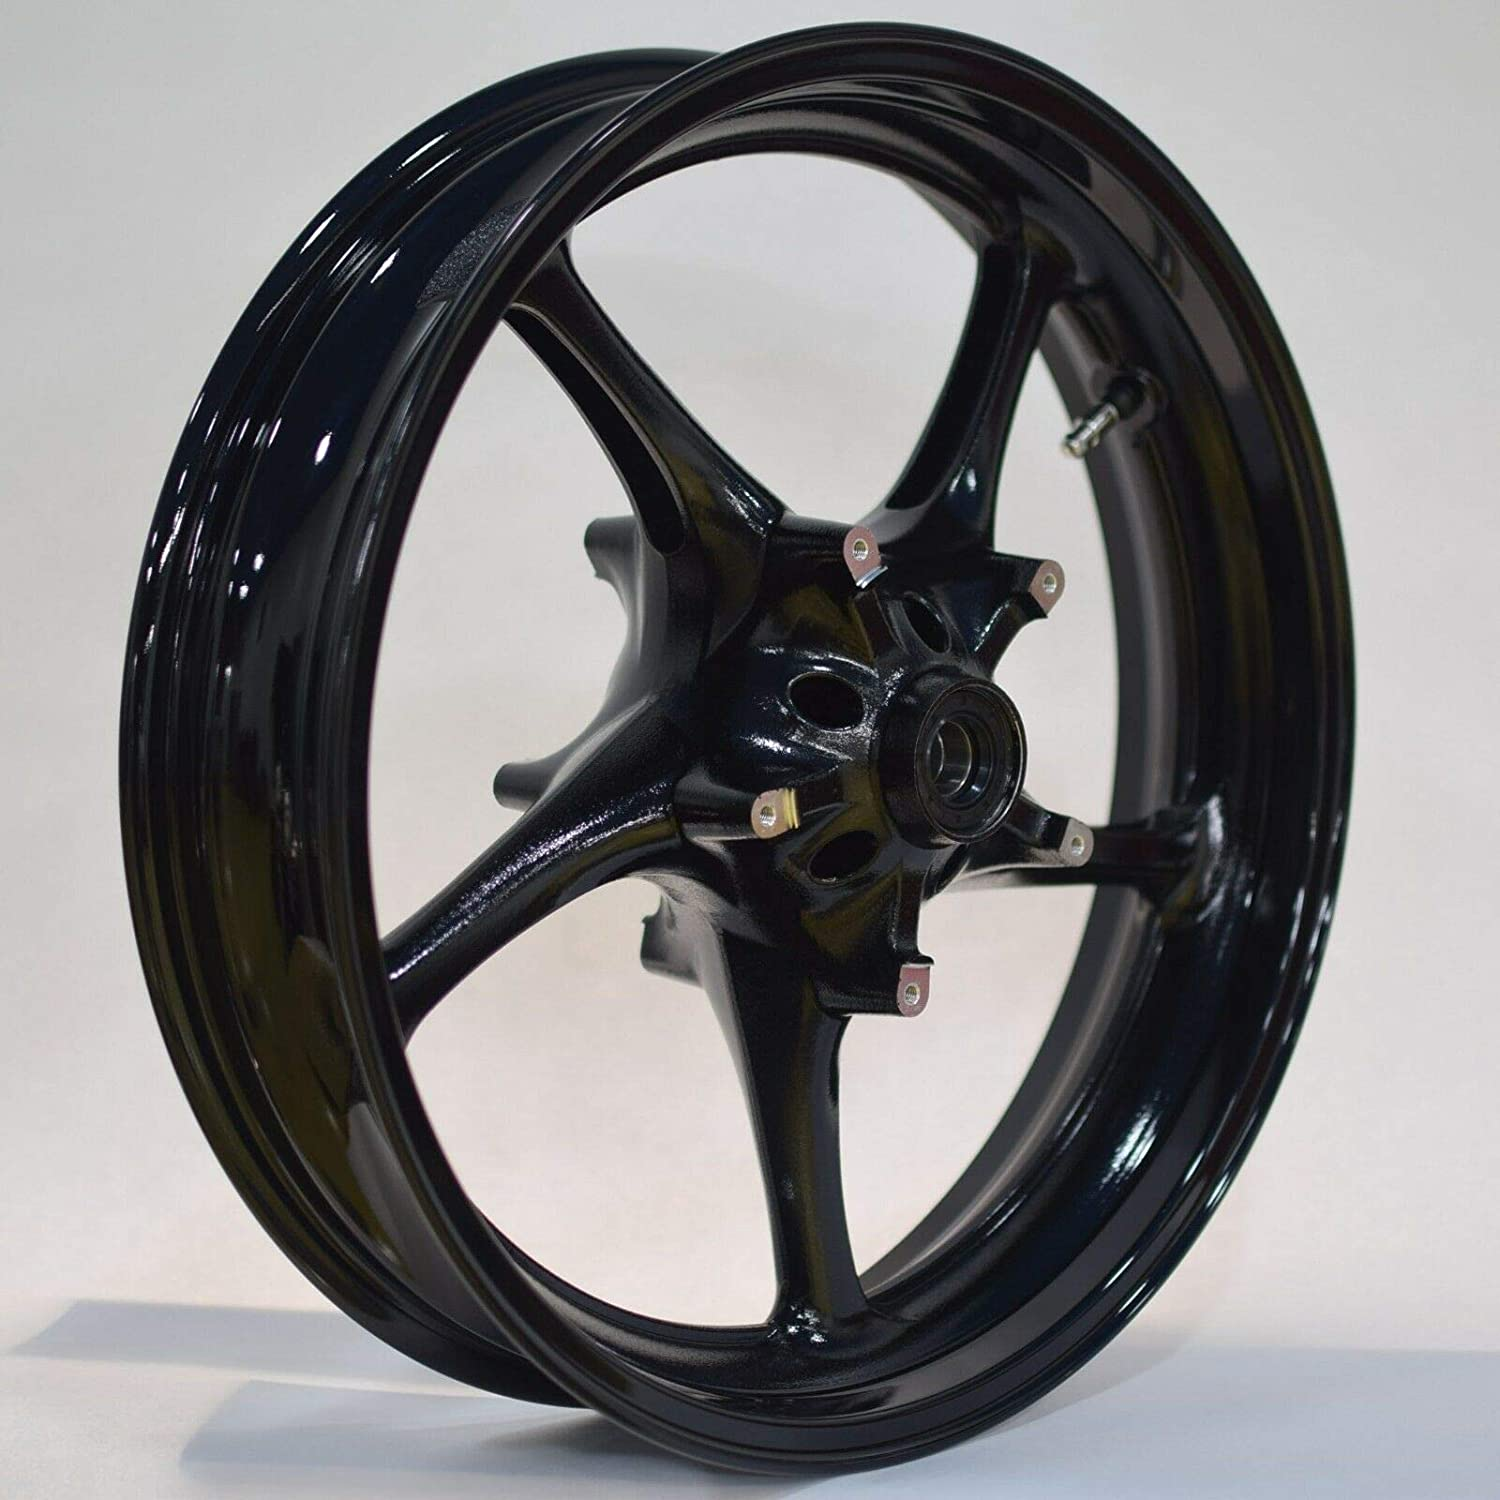 Excellent NEW Front Wheel Fits Max 57% OFF Yamaha 2004-2012 R6S 06-09 R6 R1 03-12